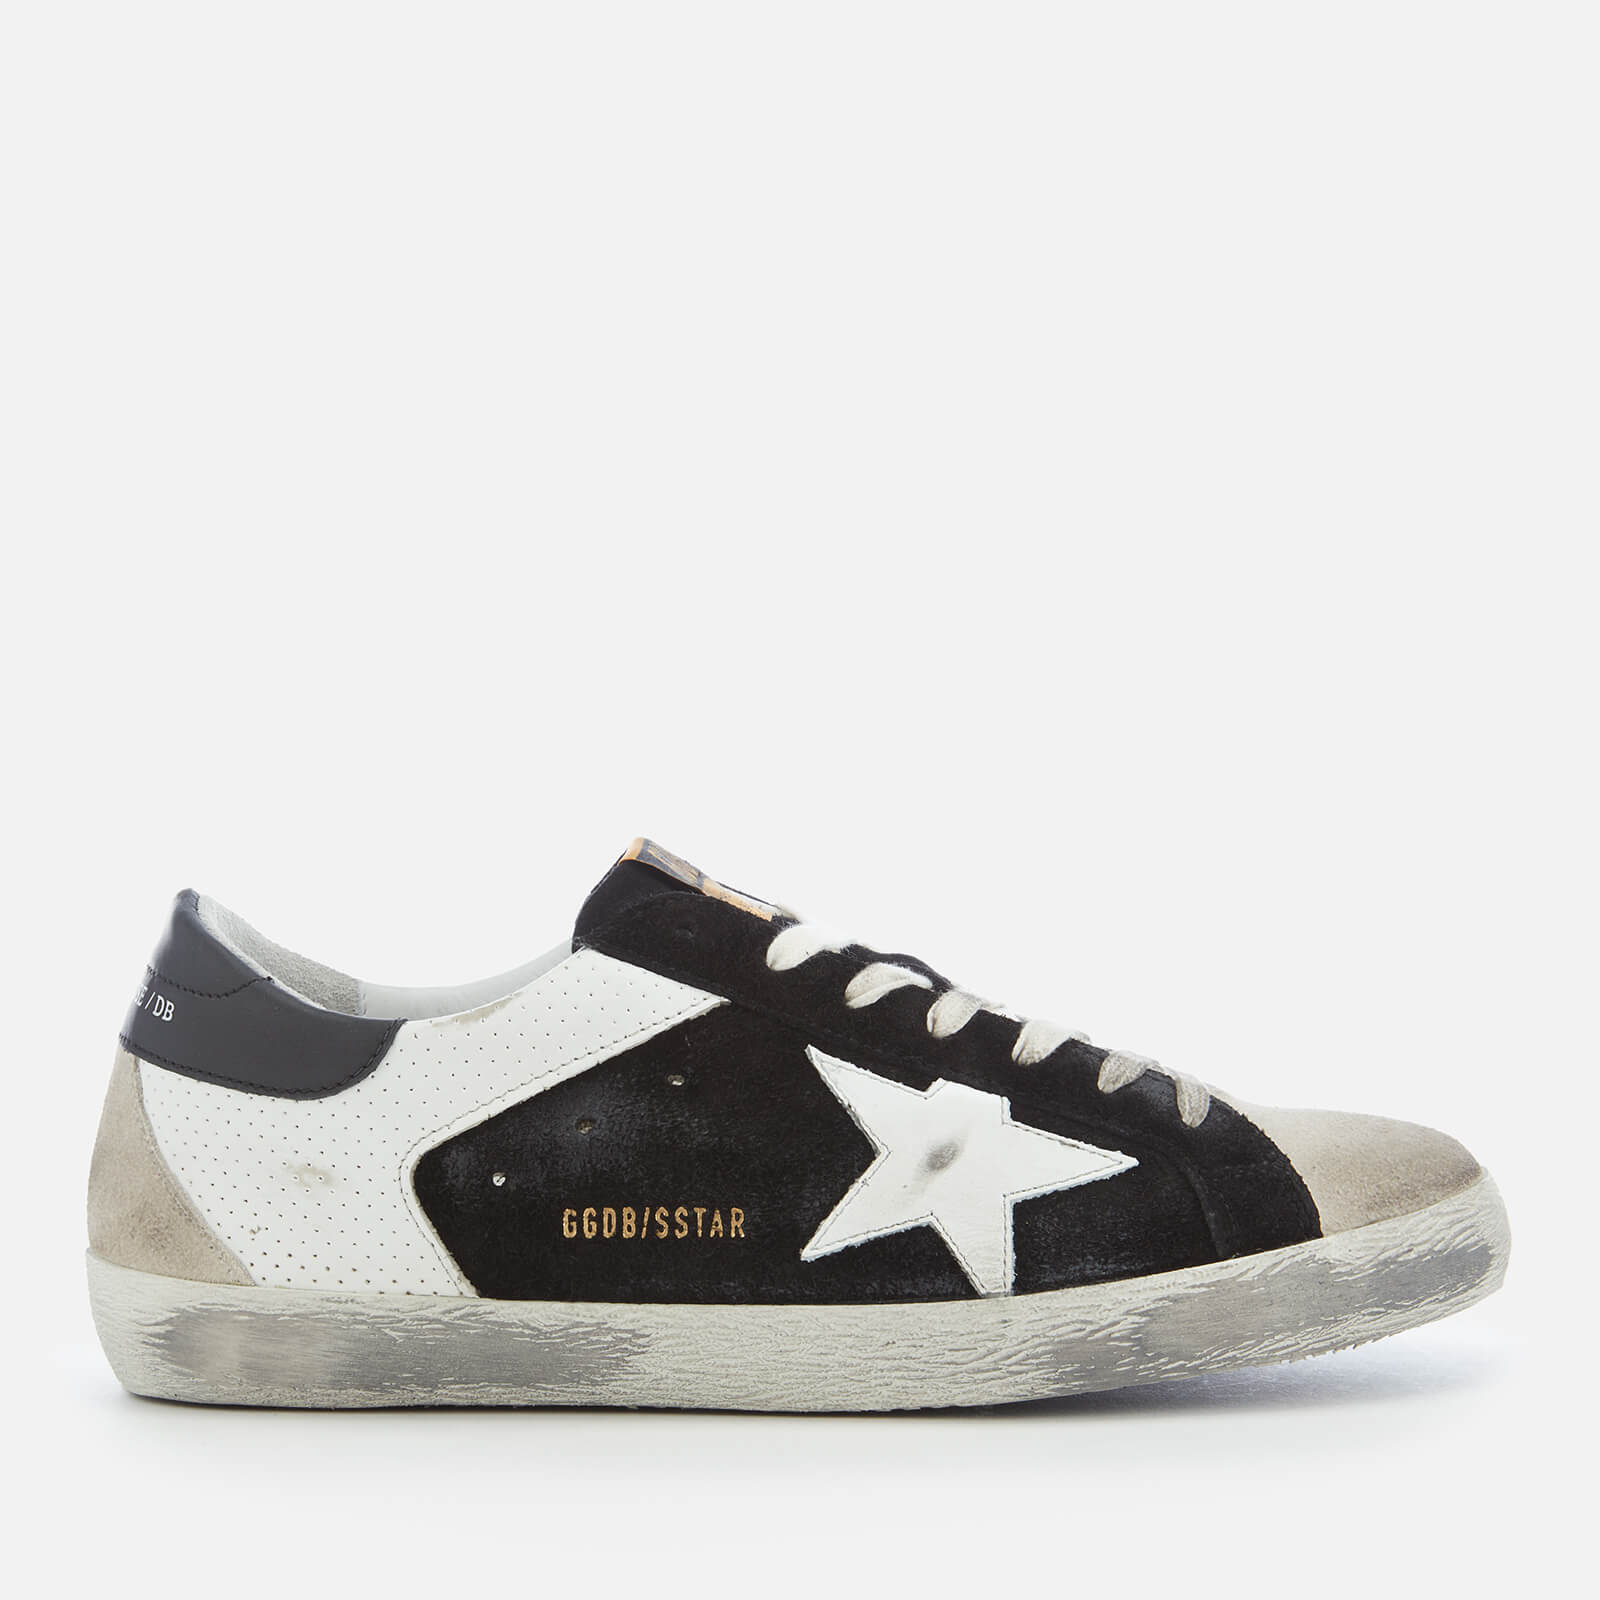 Golden Goose Deluxe Brand Men s Superstar Sneakers - White Spot Black Suede  - Free UK Delivery over £50 6c36226f9e6